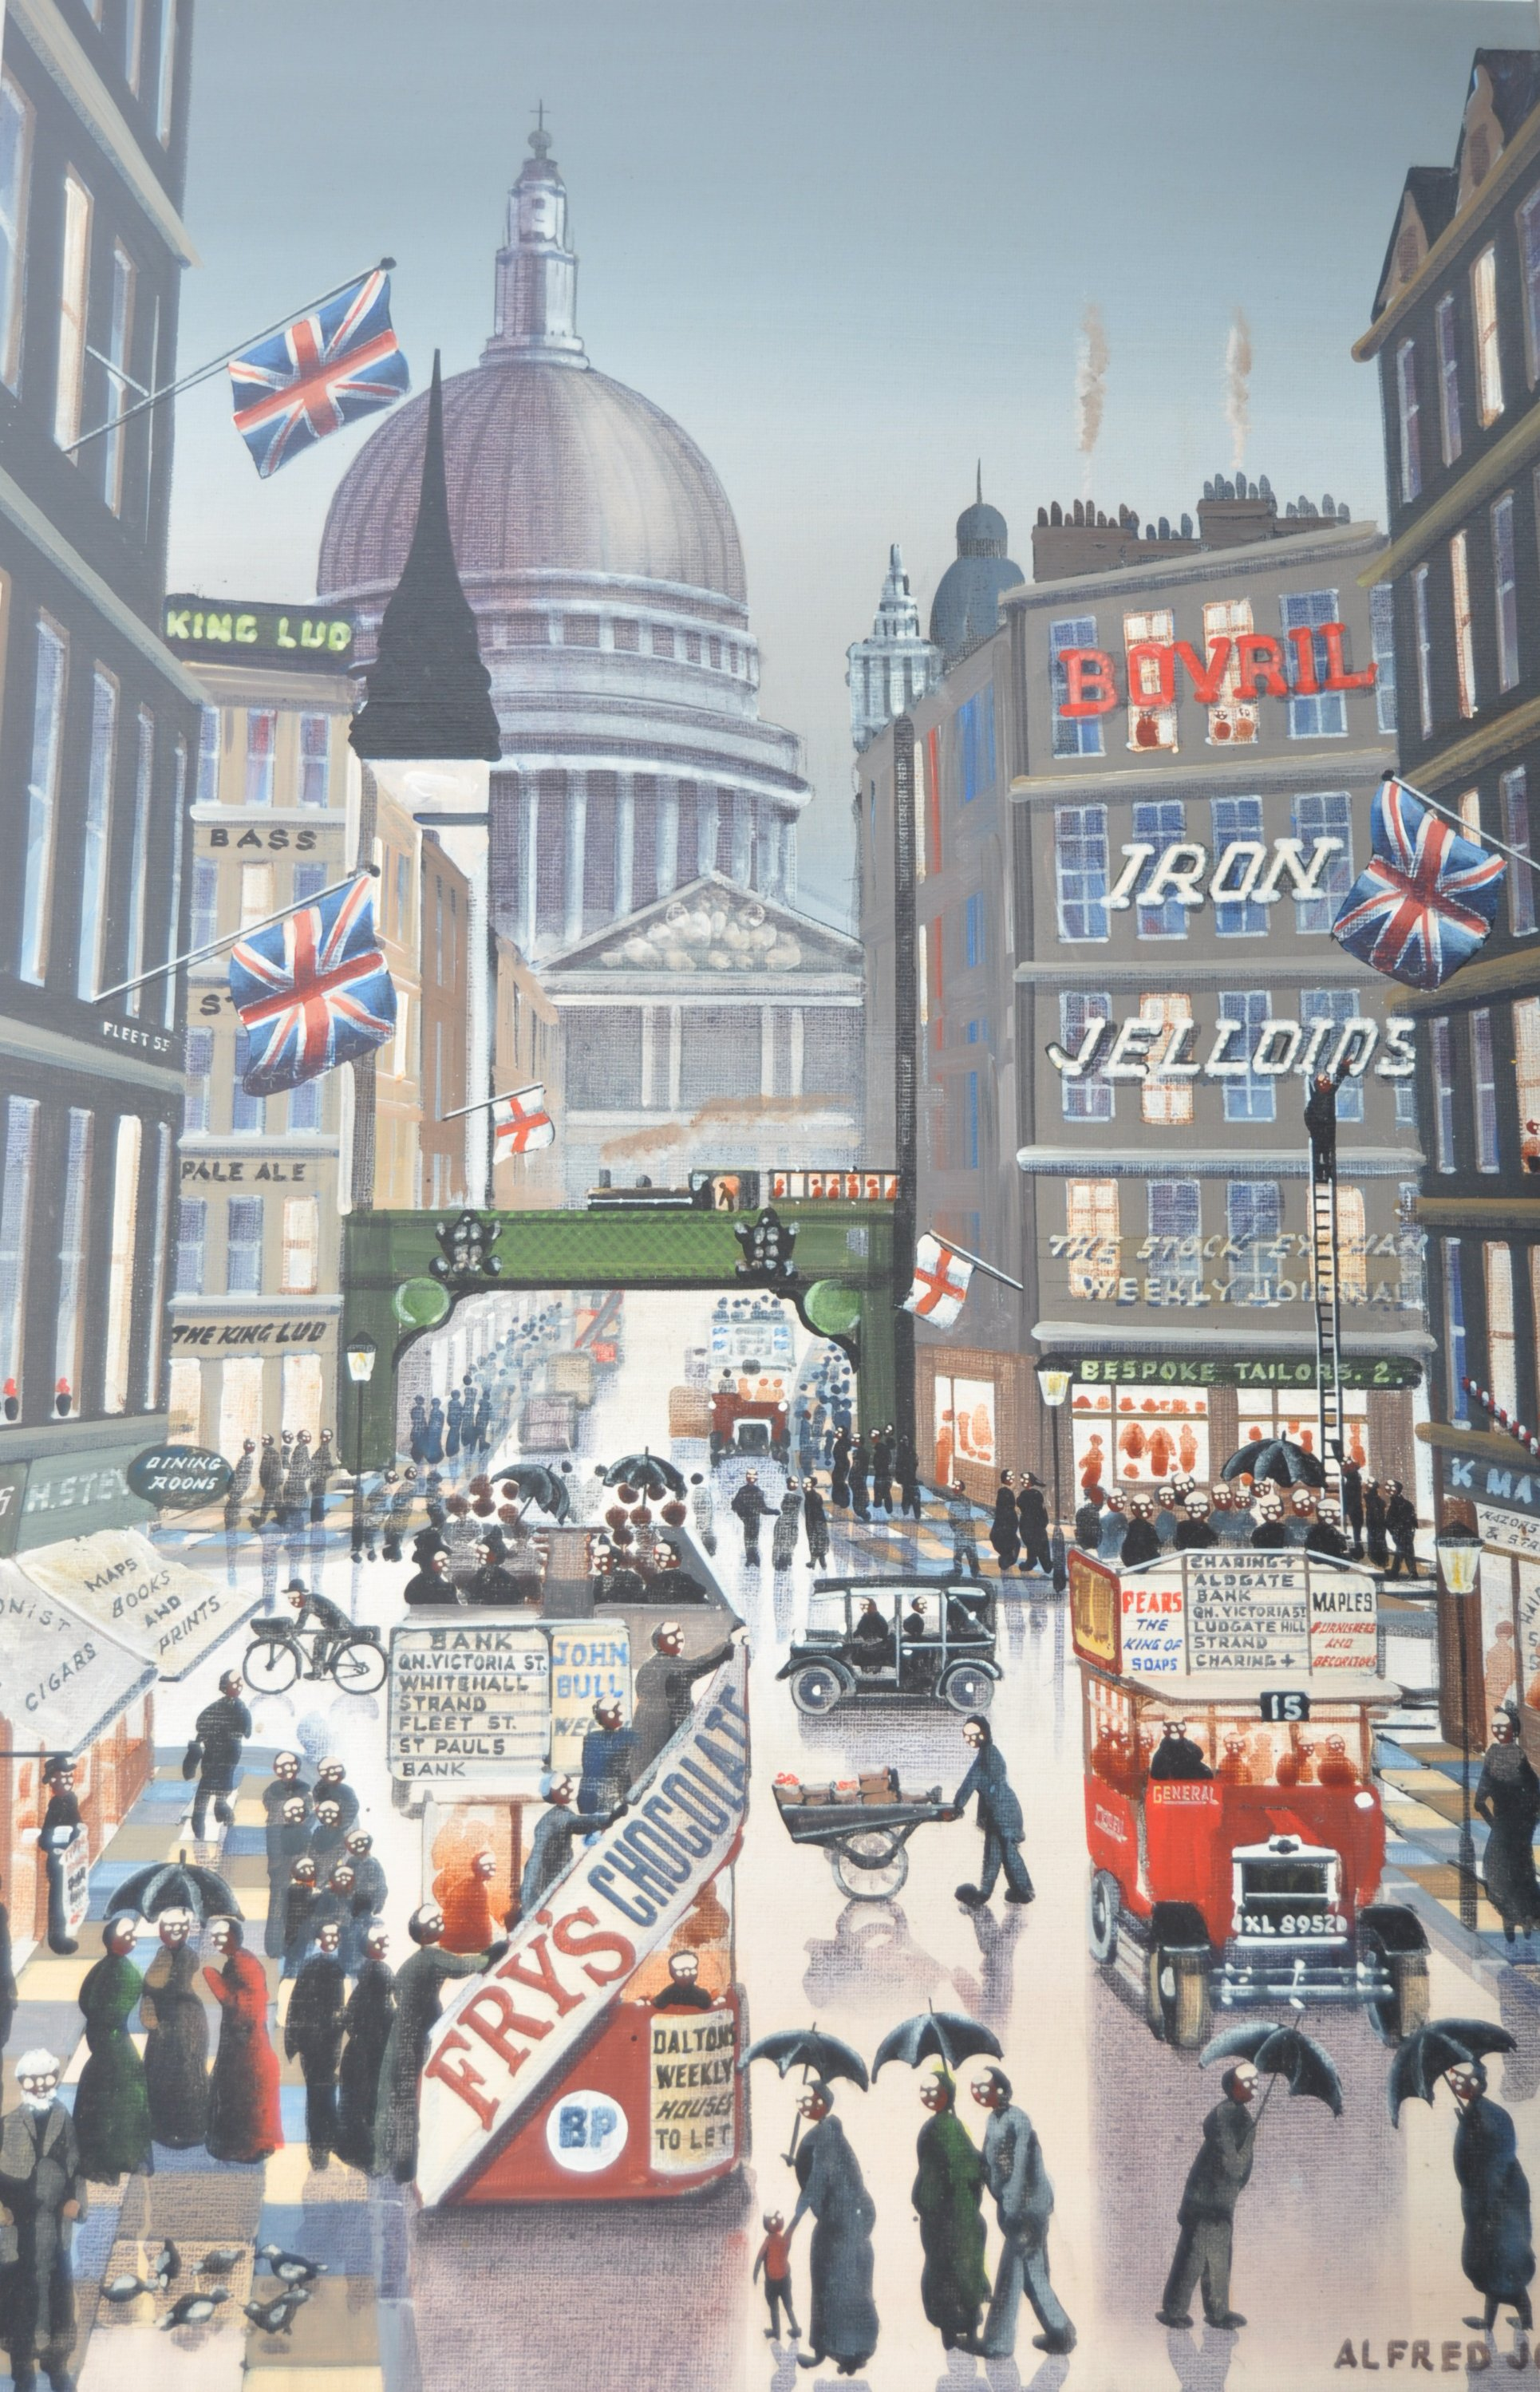 ALFRED JONES OIL ON BOARD PAINTING DEPICTING A LONDON STREET - Image 2 of 6